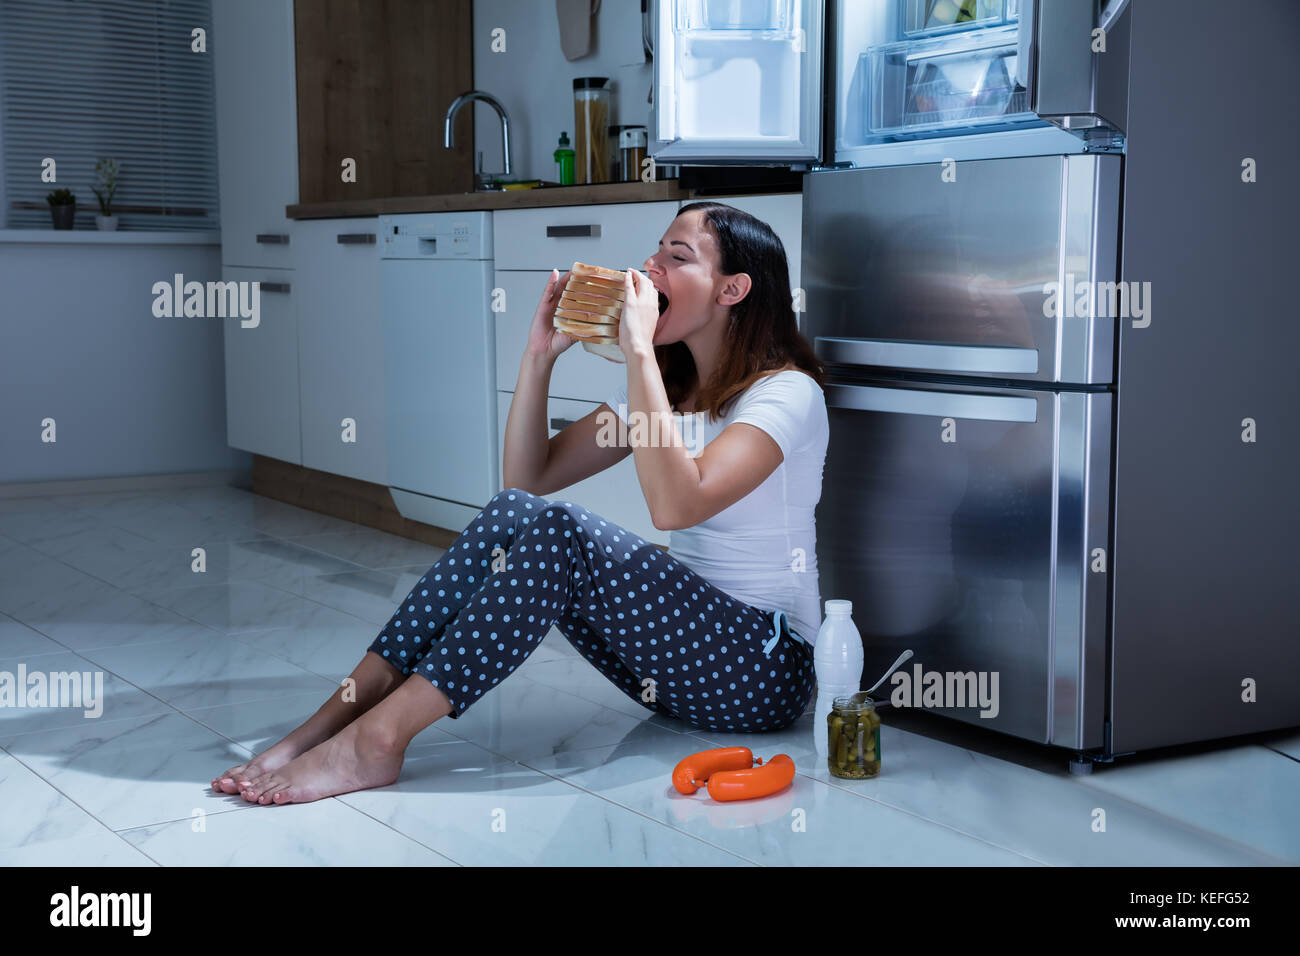 Young Woman Eating Sandwich With Jar Of Pickle While Sitting On ...